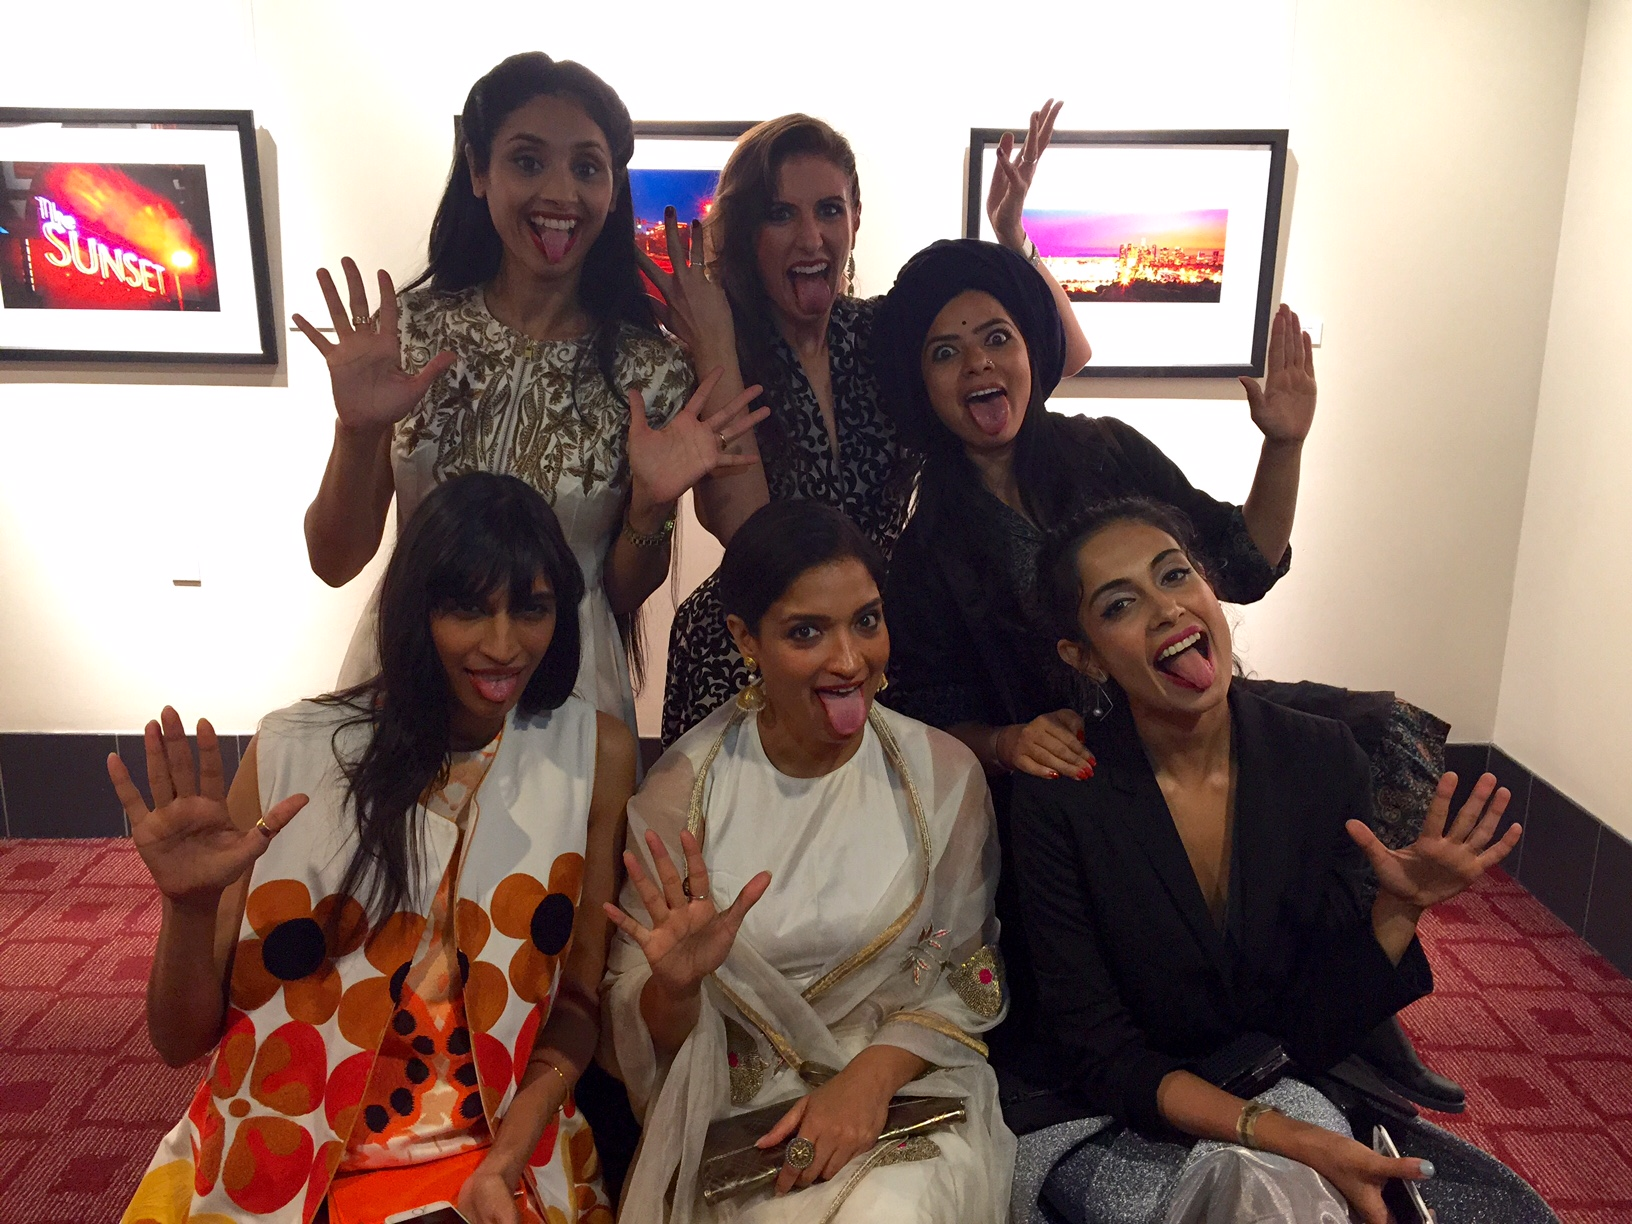 Bold, stunning and eloquent, 'Angry Indian Goddesses' sets the tone for IFFLA 2016